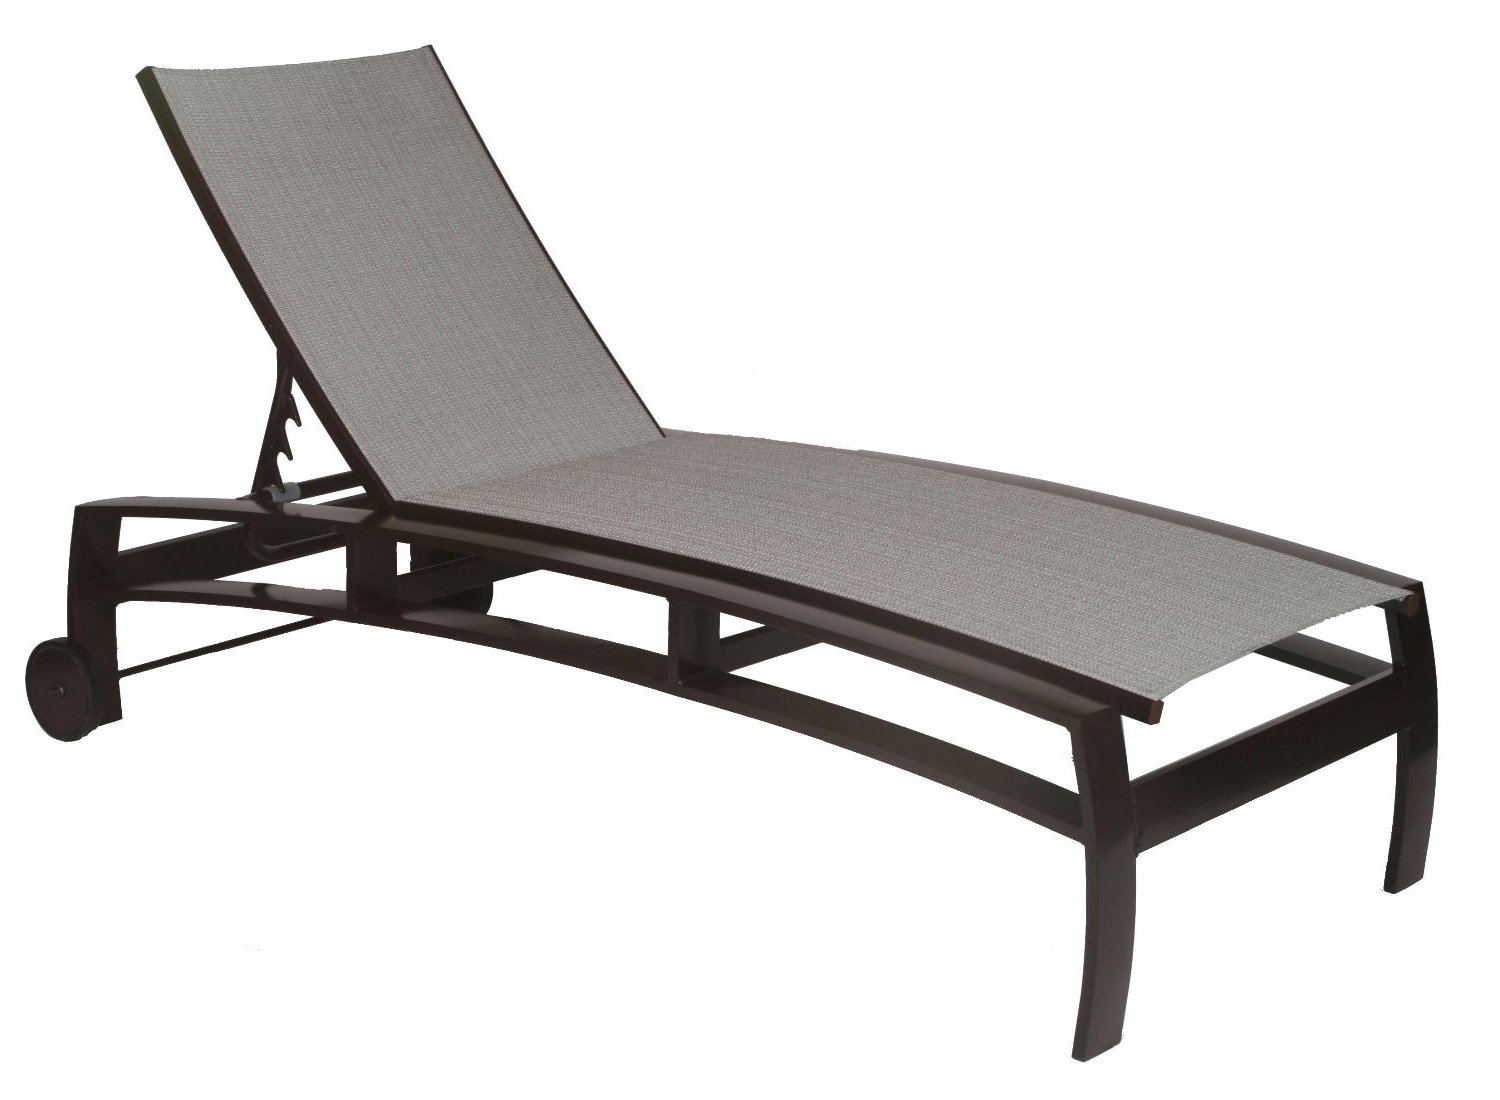 Best Chaise Lounge Chairs 15 The Best Sling Chaise Lounge Chairs For Outdoor